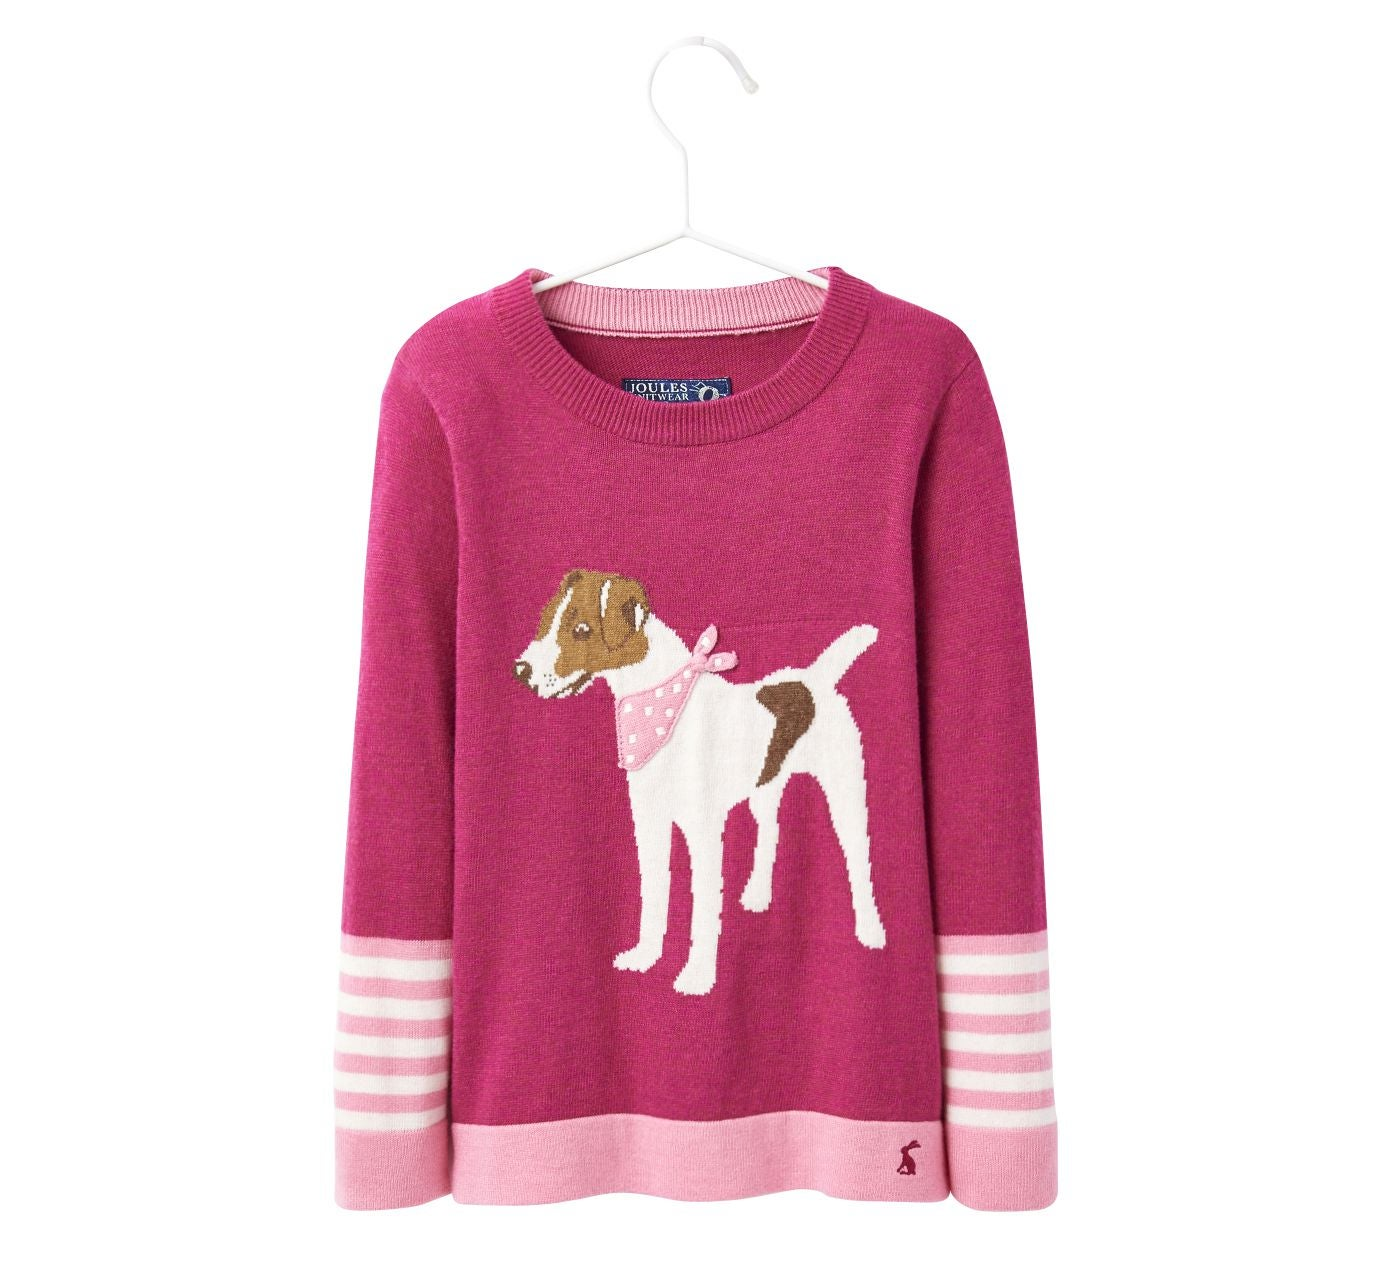 13 best girls' jumpers   The Independent   The Independent